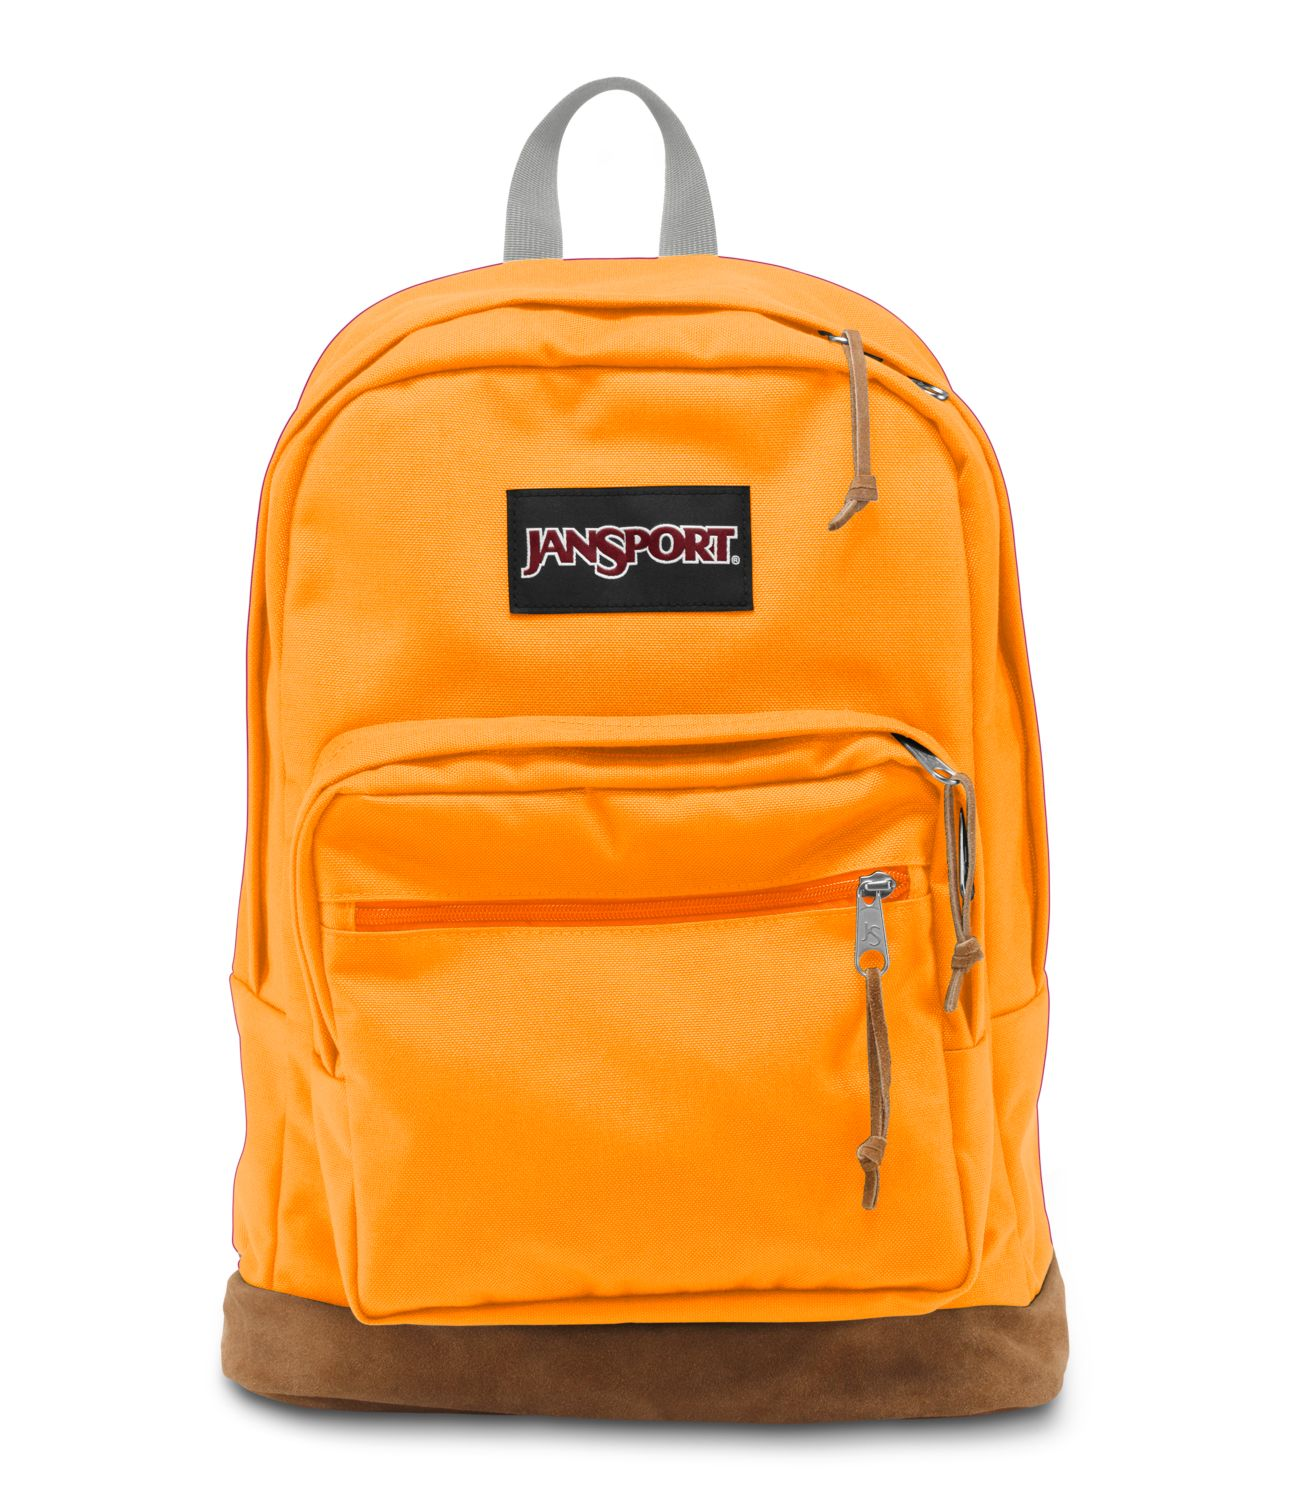 JanSport RIGHT PACK BACKPACK - ORANGE GOLD - Fantasyard Costume ...